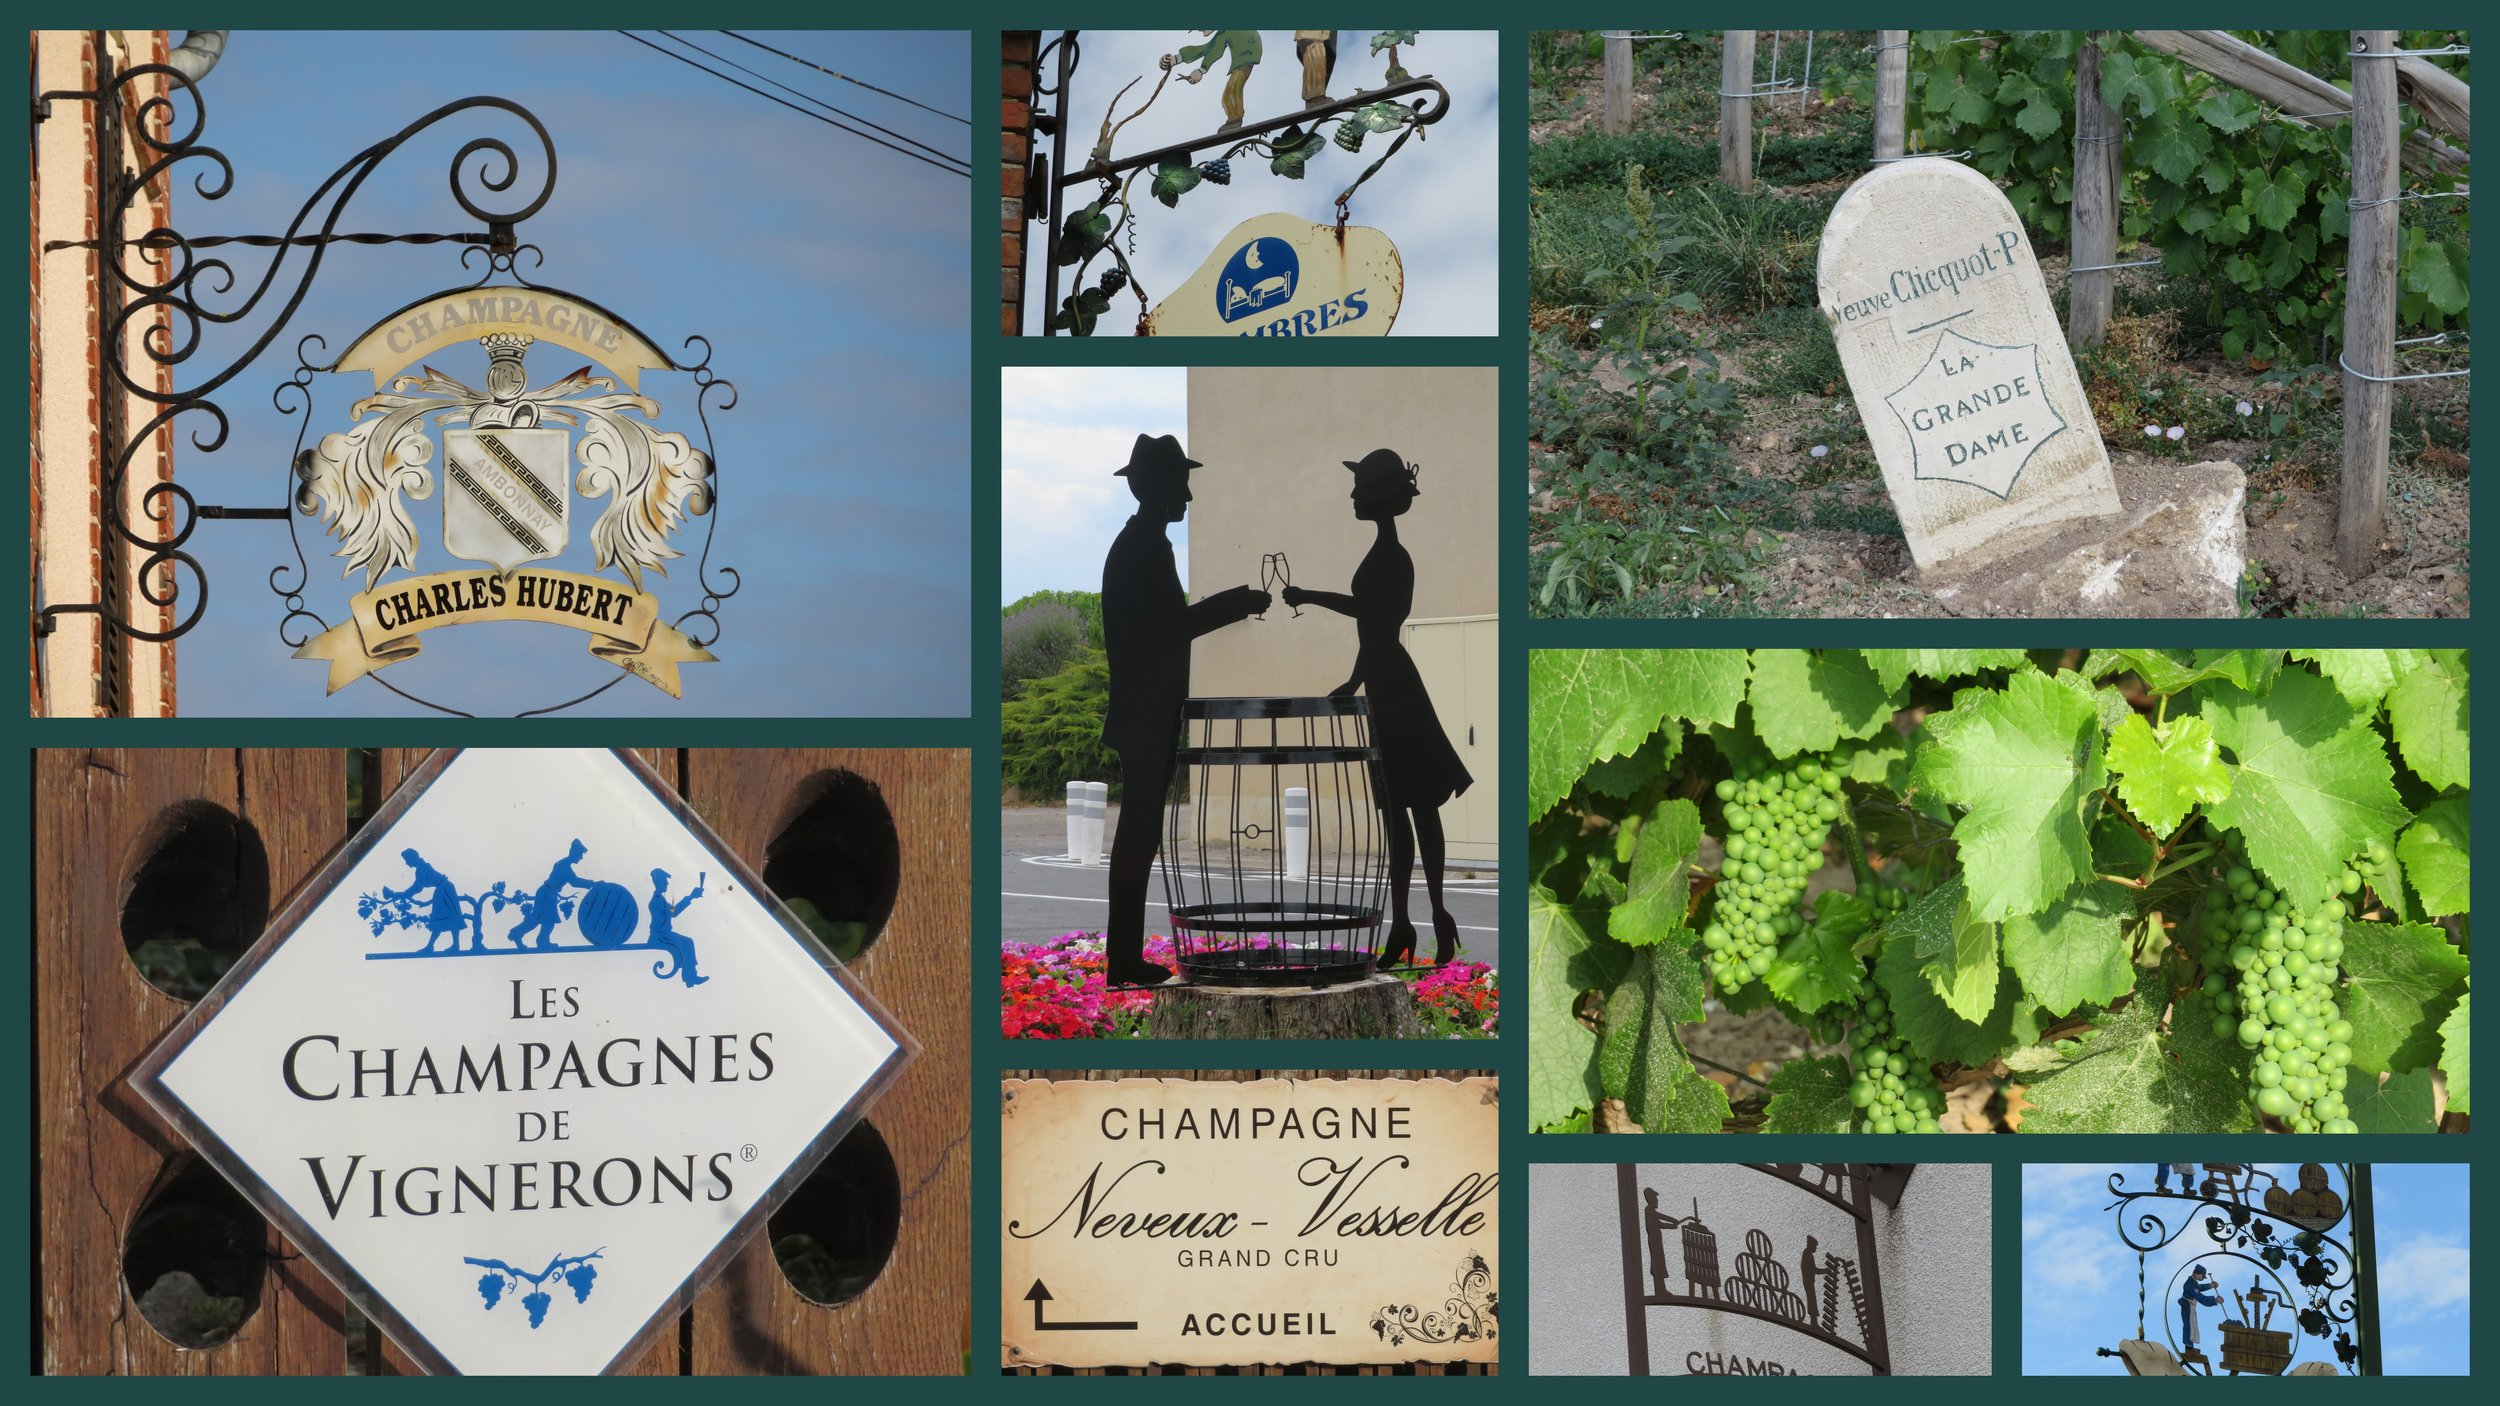 We're now trekking our way through champagne country